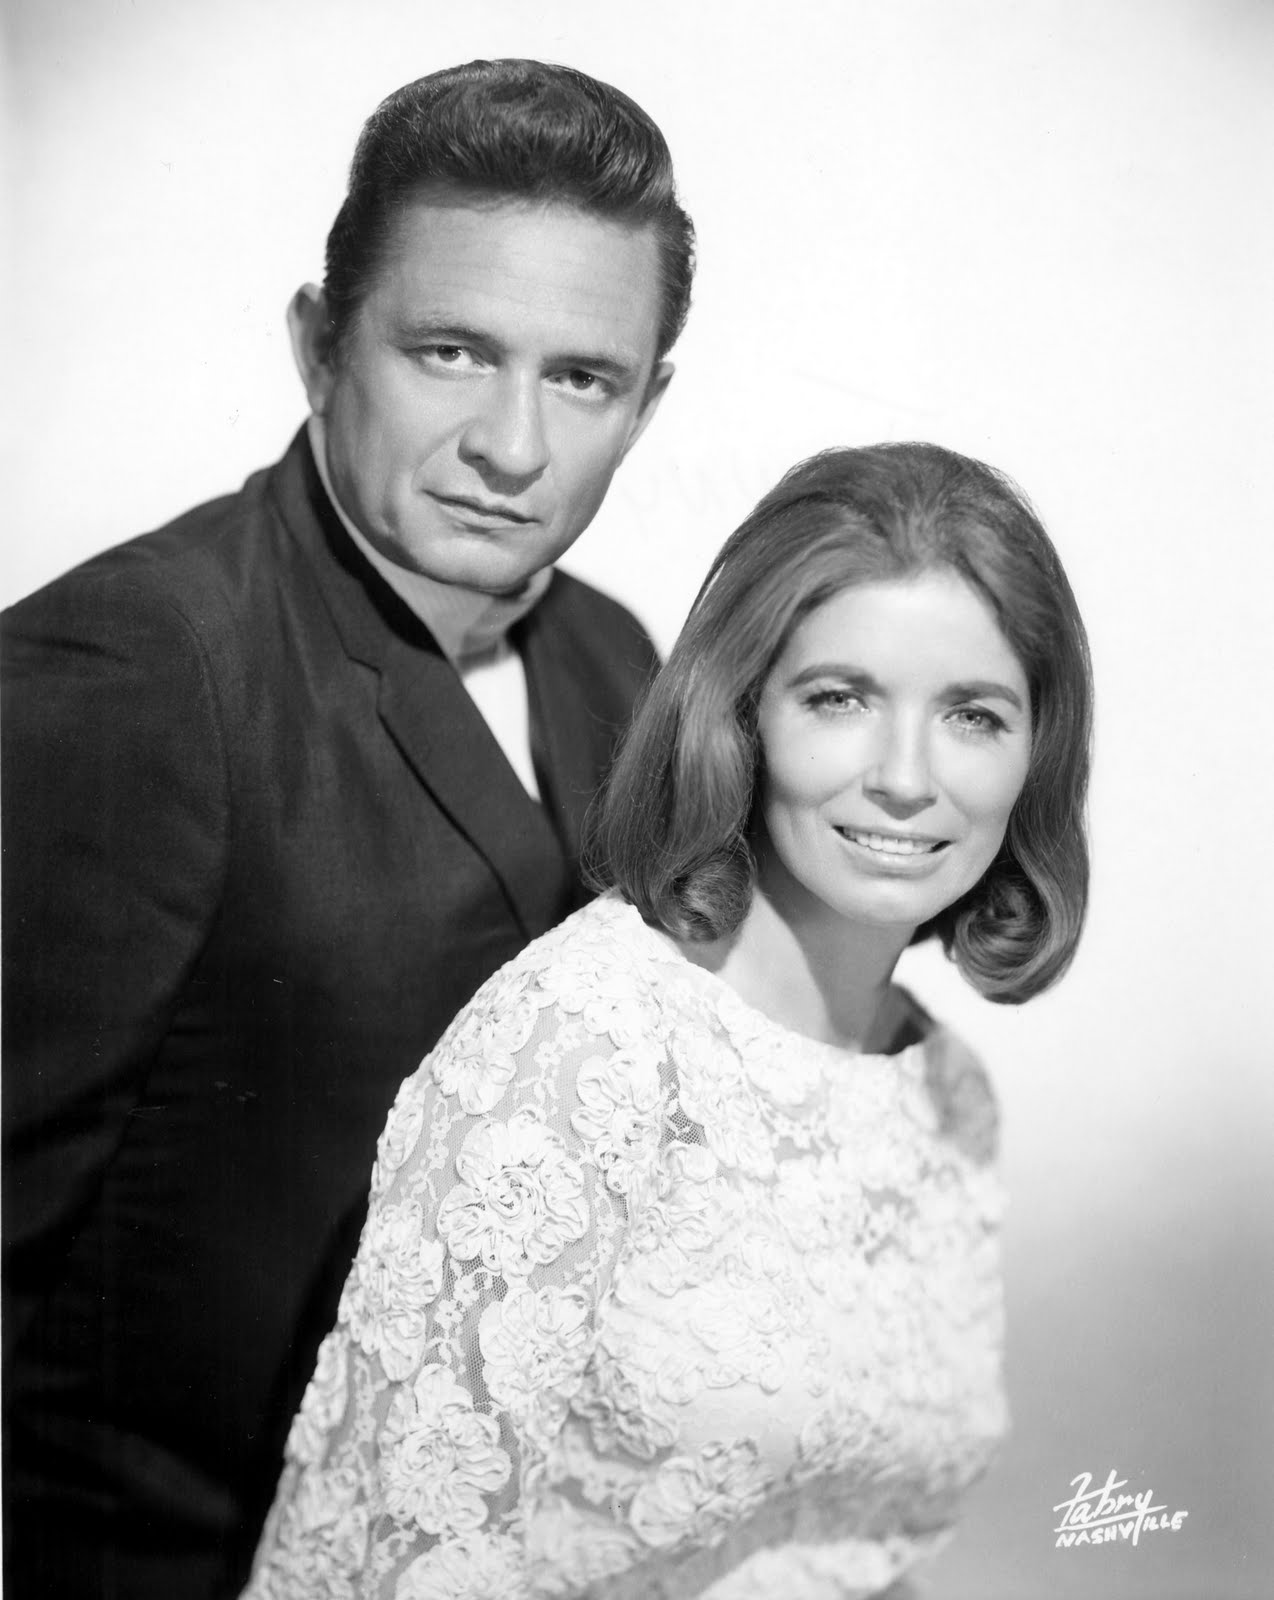 [DOWNLOAD] View topic - Johnny Cash And June Carter Cash